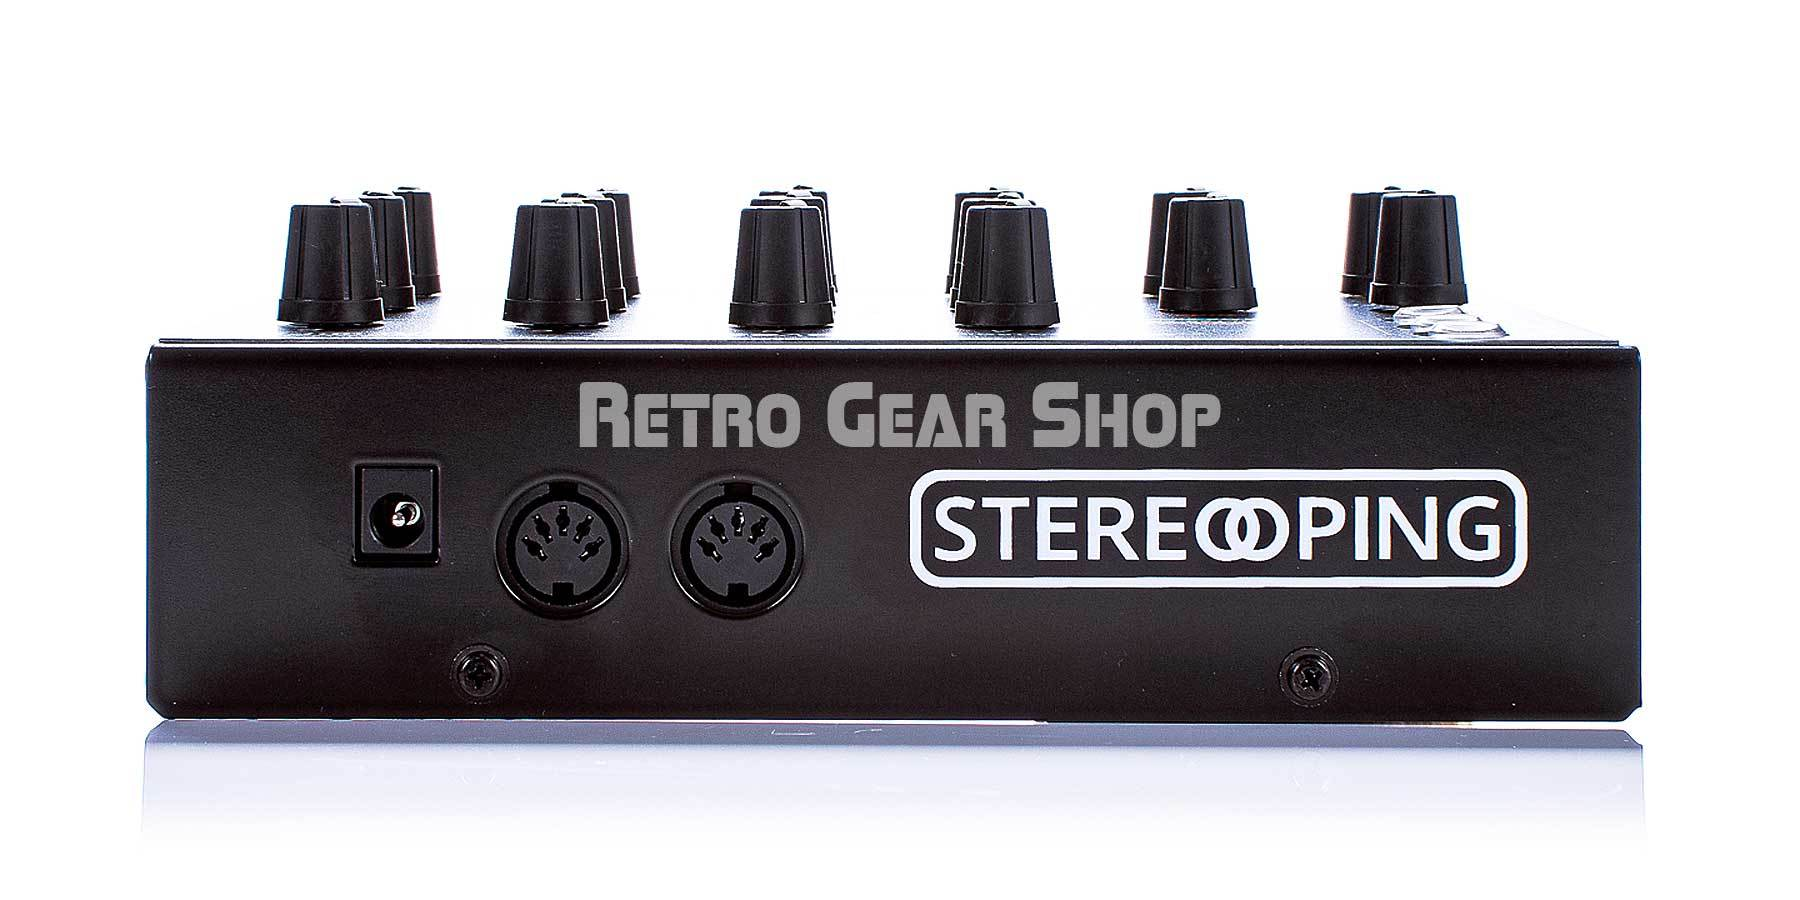 Stereoping CE-1 MircoGork Midi Controller Rear